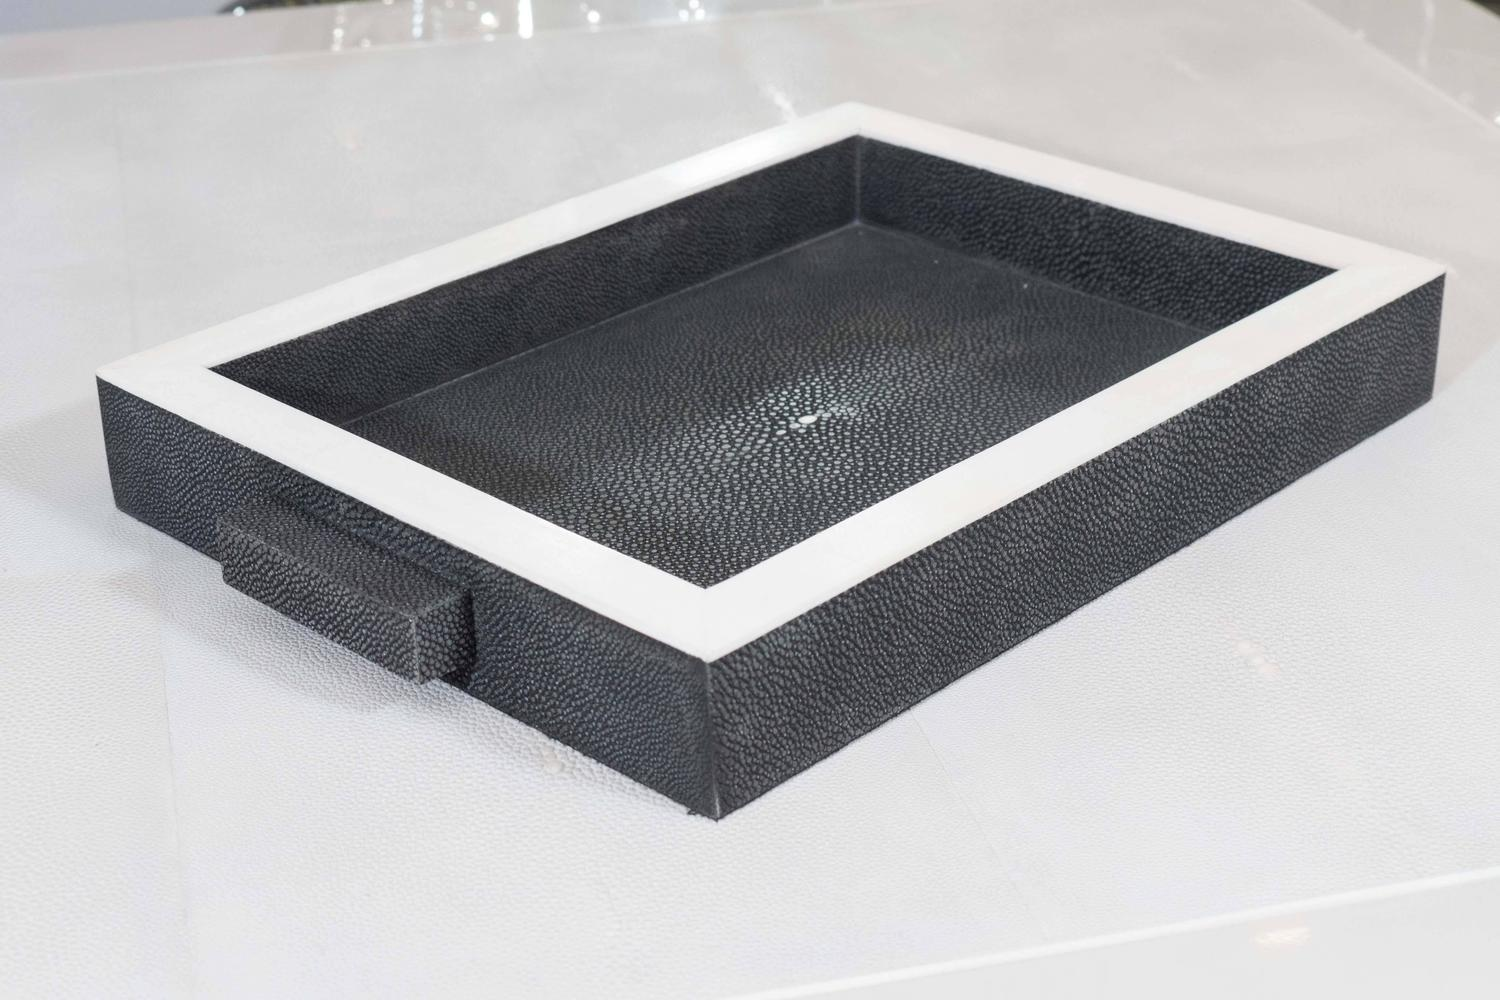 Onyx Trim Pieces : Onyx shagreen tray with bone trim for sale at stdibs